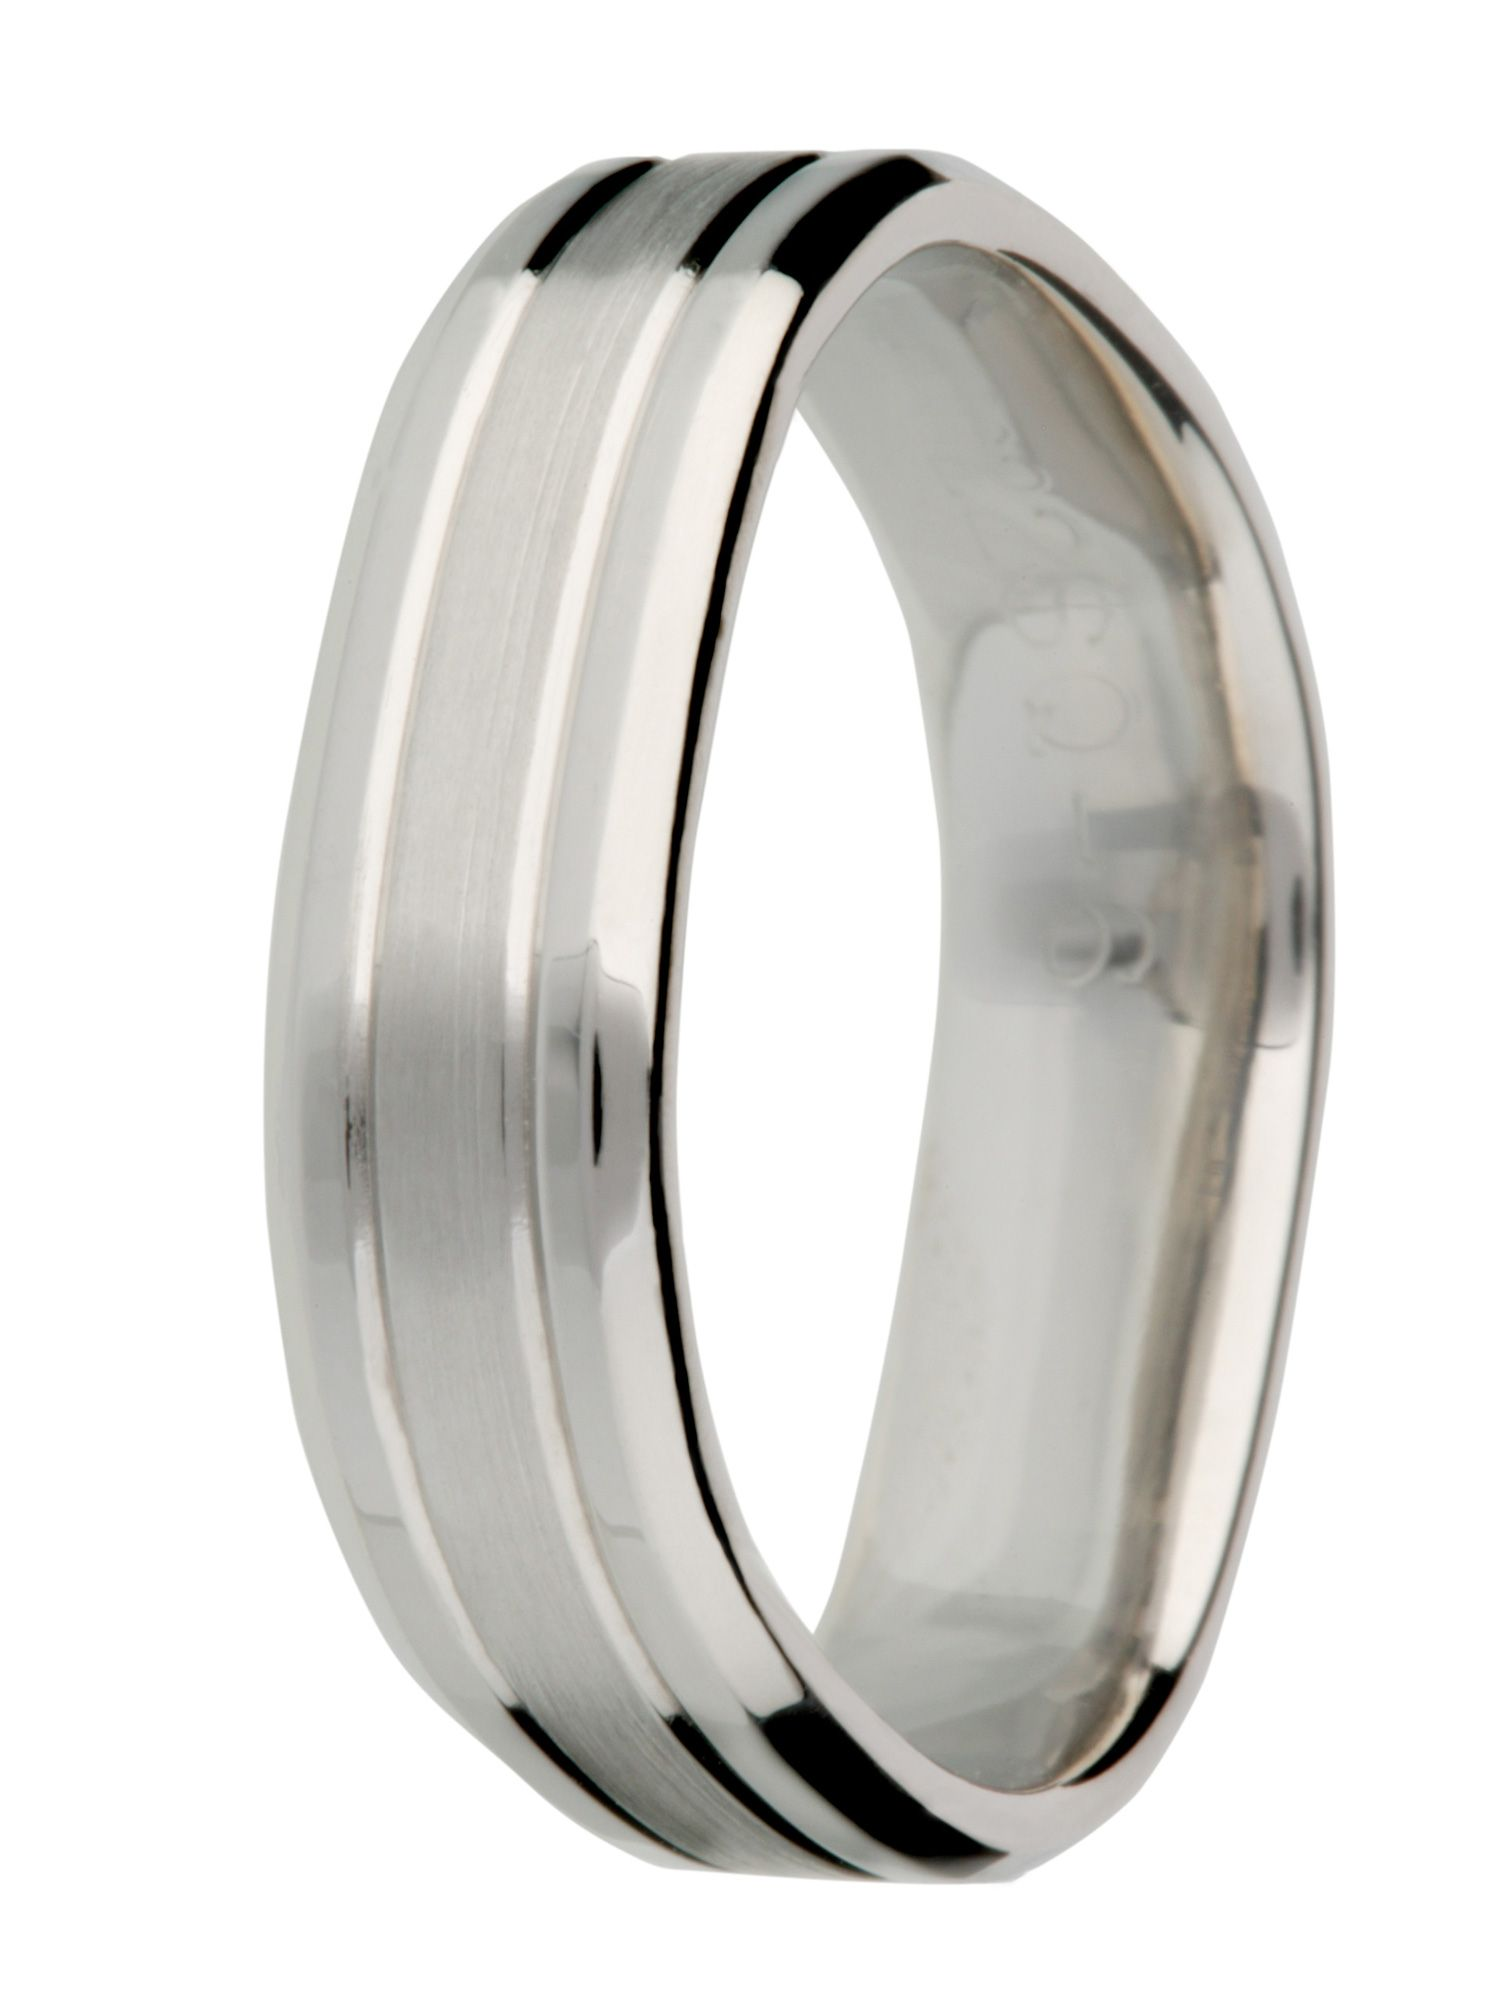 Goldsmiths Grooms palladium 6mm wedding ring review pare prices on